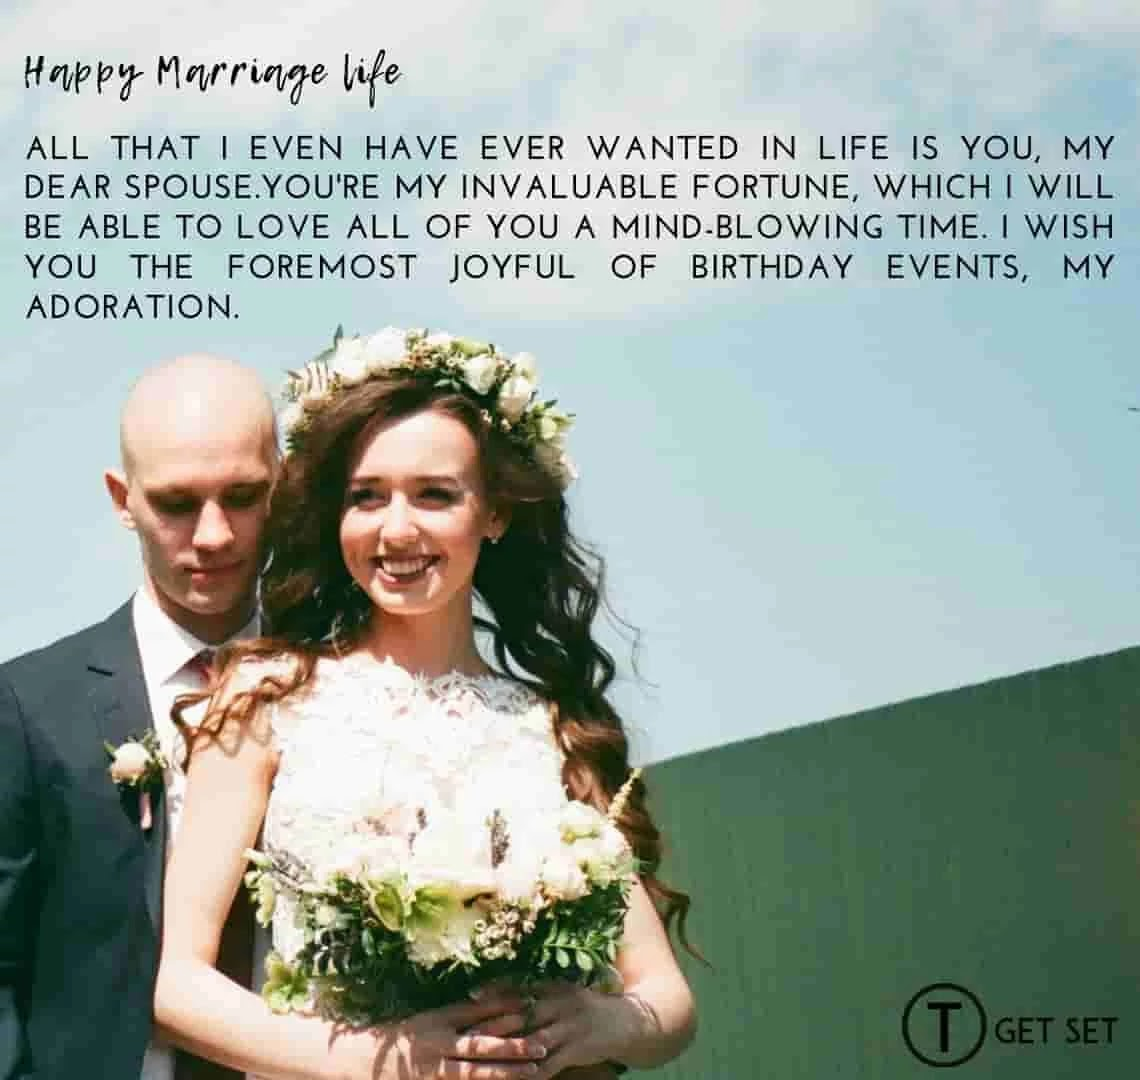 happy-marriage-life-quote-to-wife